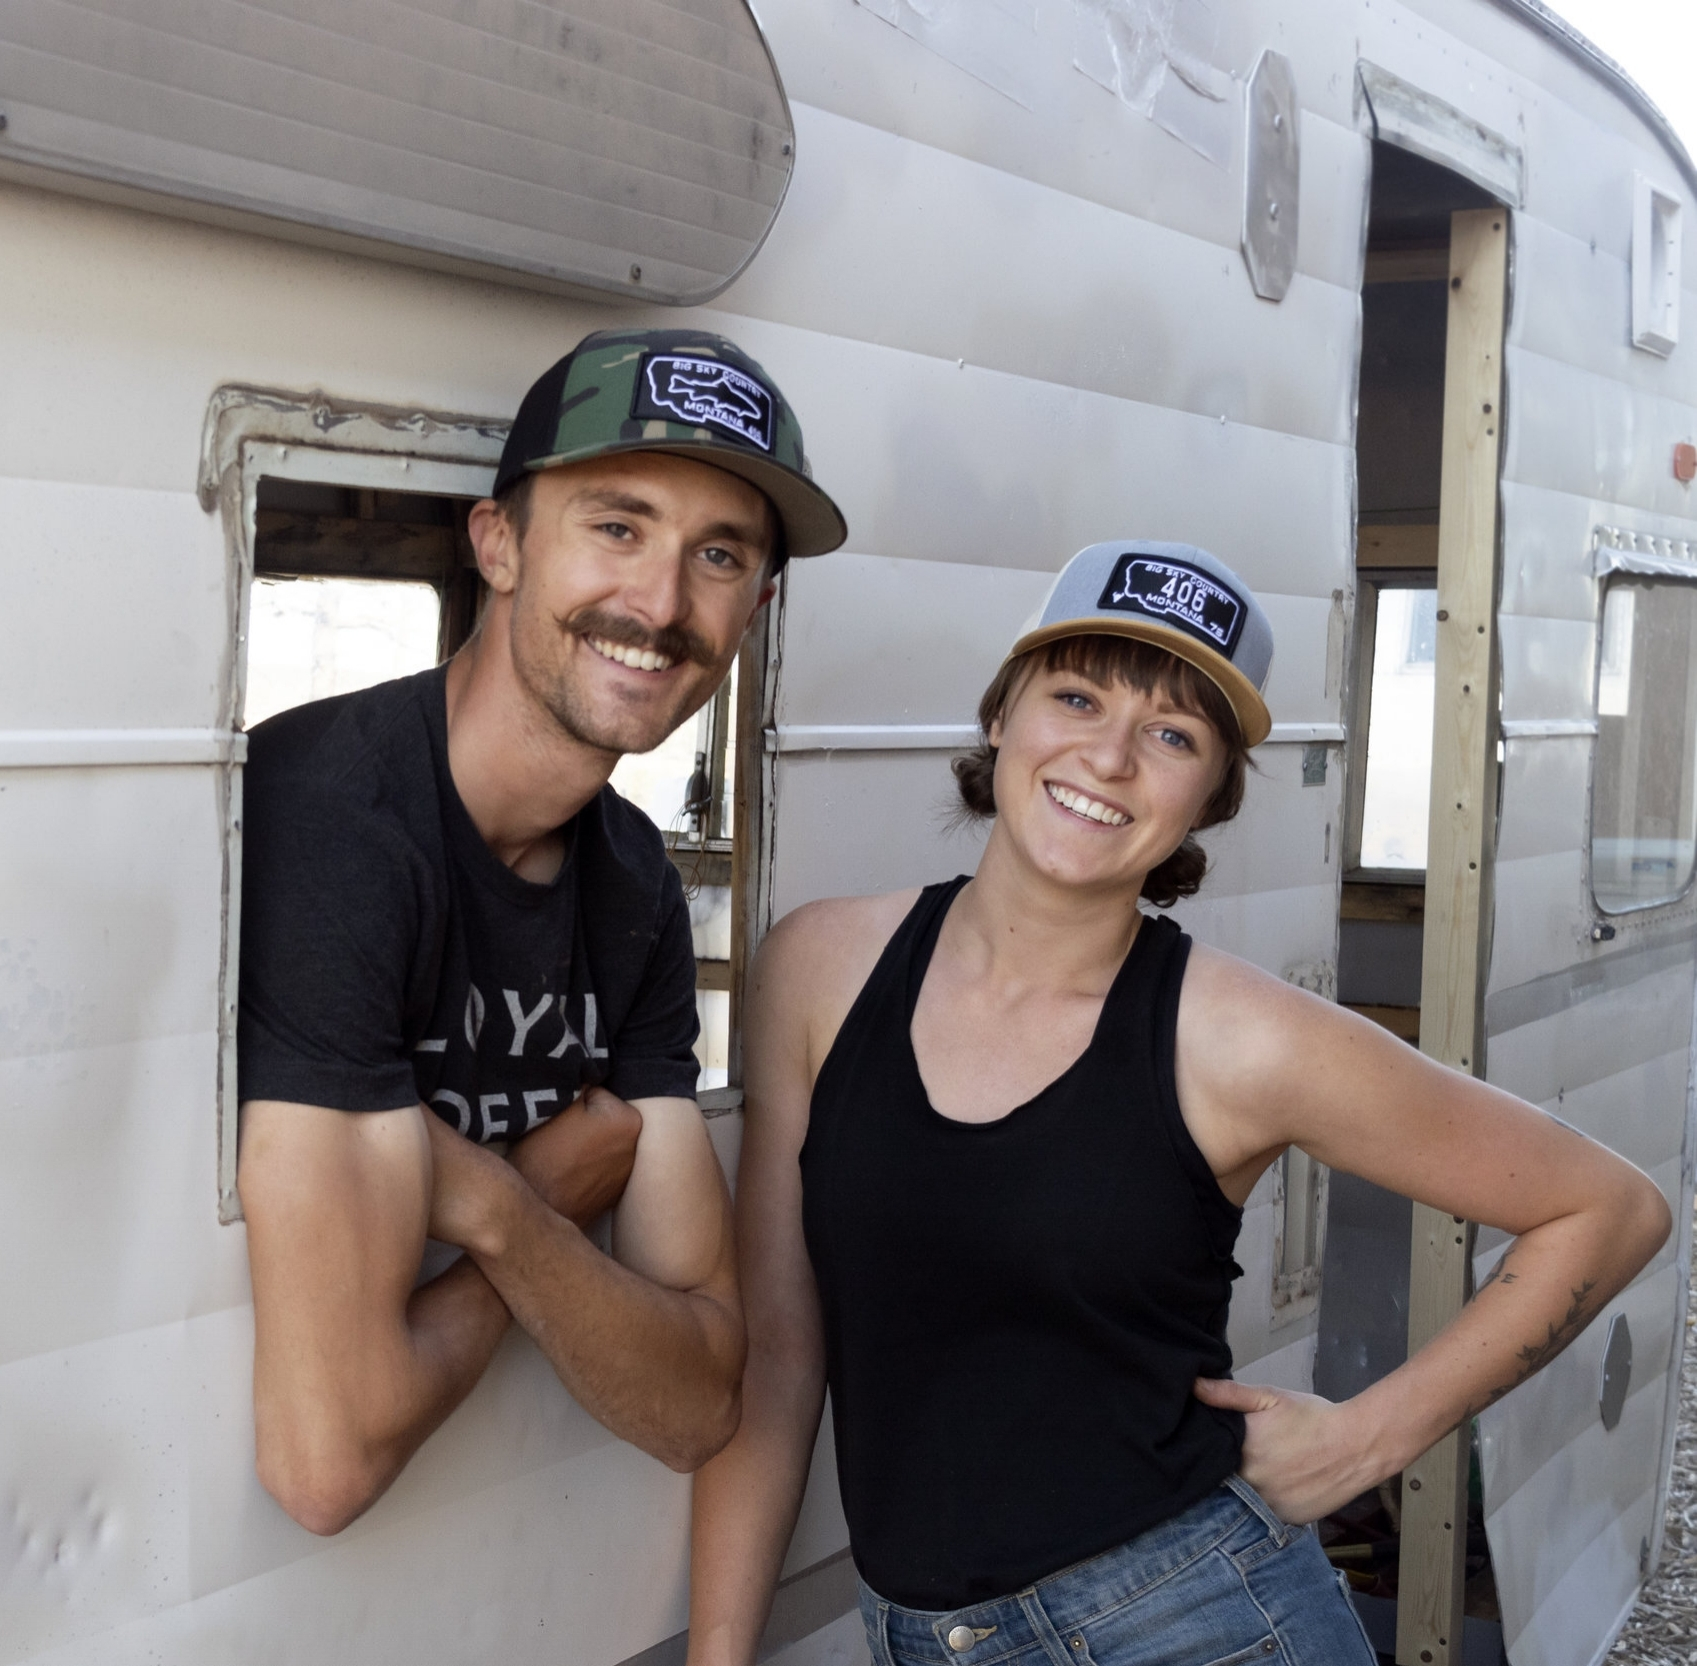 Rachael Weidlich & Steven Ladefoged - Coffee. Rachael Weidlich and Steven Ladefoged originated Montago Coffee Co. in 2016. Their conscious company is built on a love for craft coffee, strong community and expansive wilderness. Come Spring 2019 Montago Coffee Co. will open their renovated 1958 Shasta in Helena Montana. Weidlich has extensive experience making coffee and building community in Montana, New Zealand, and Colorado Springs. @montago_coffee